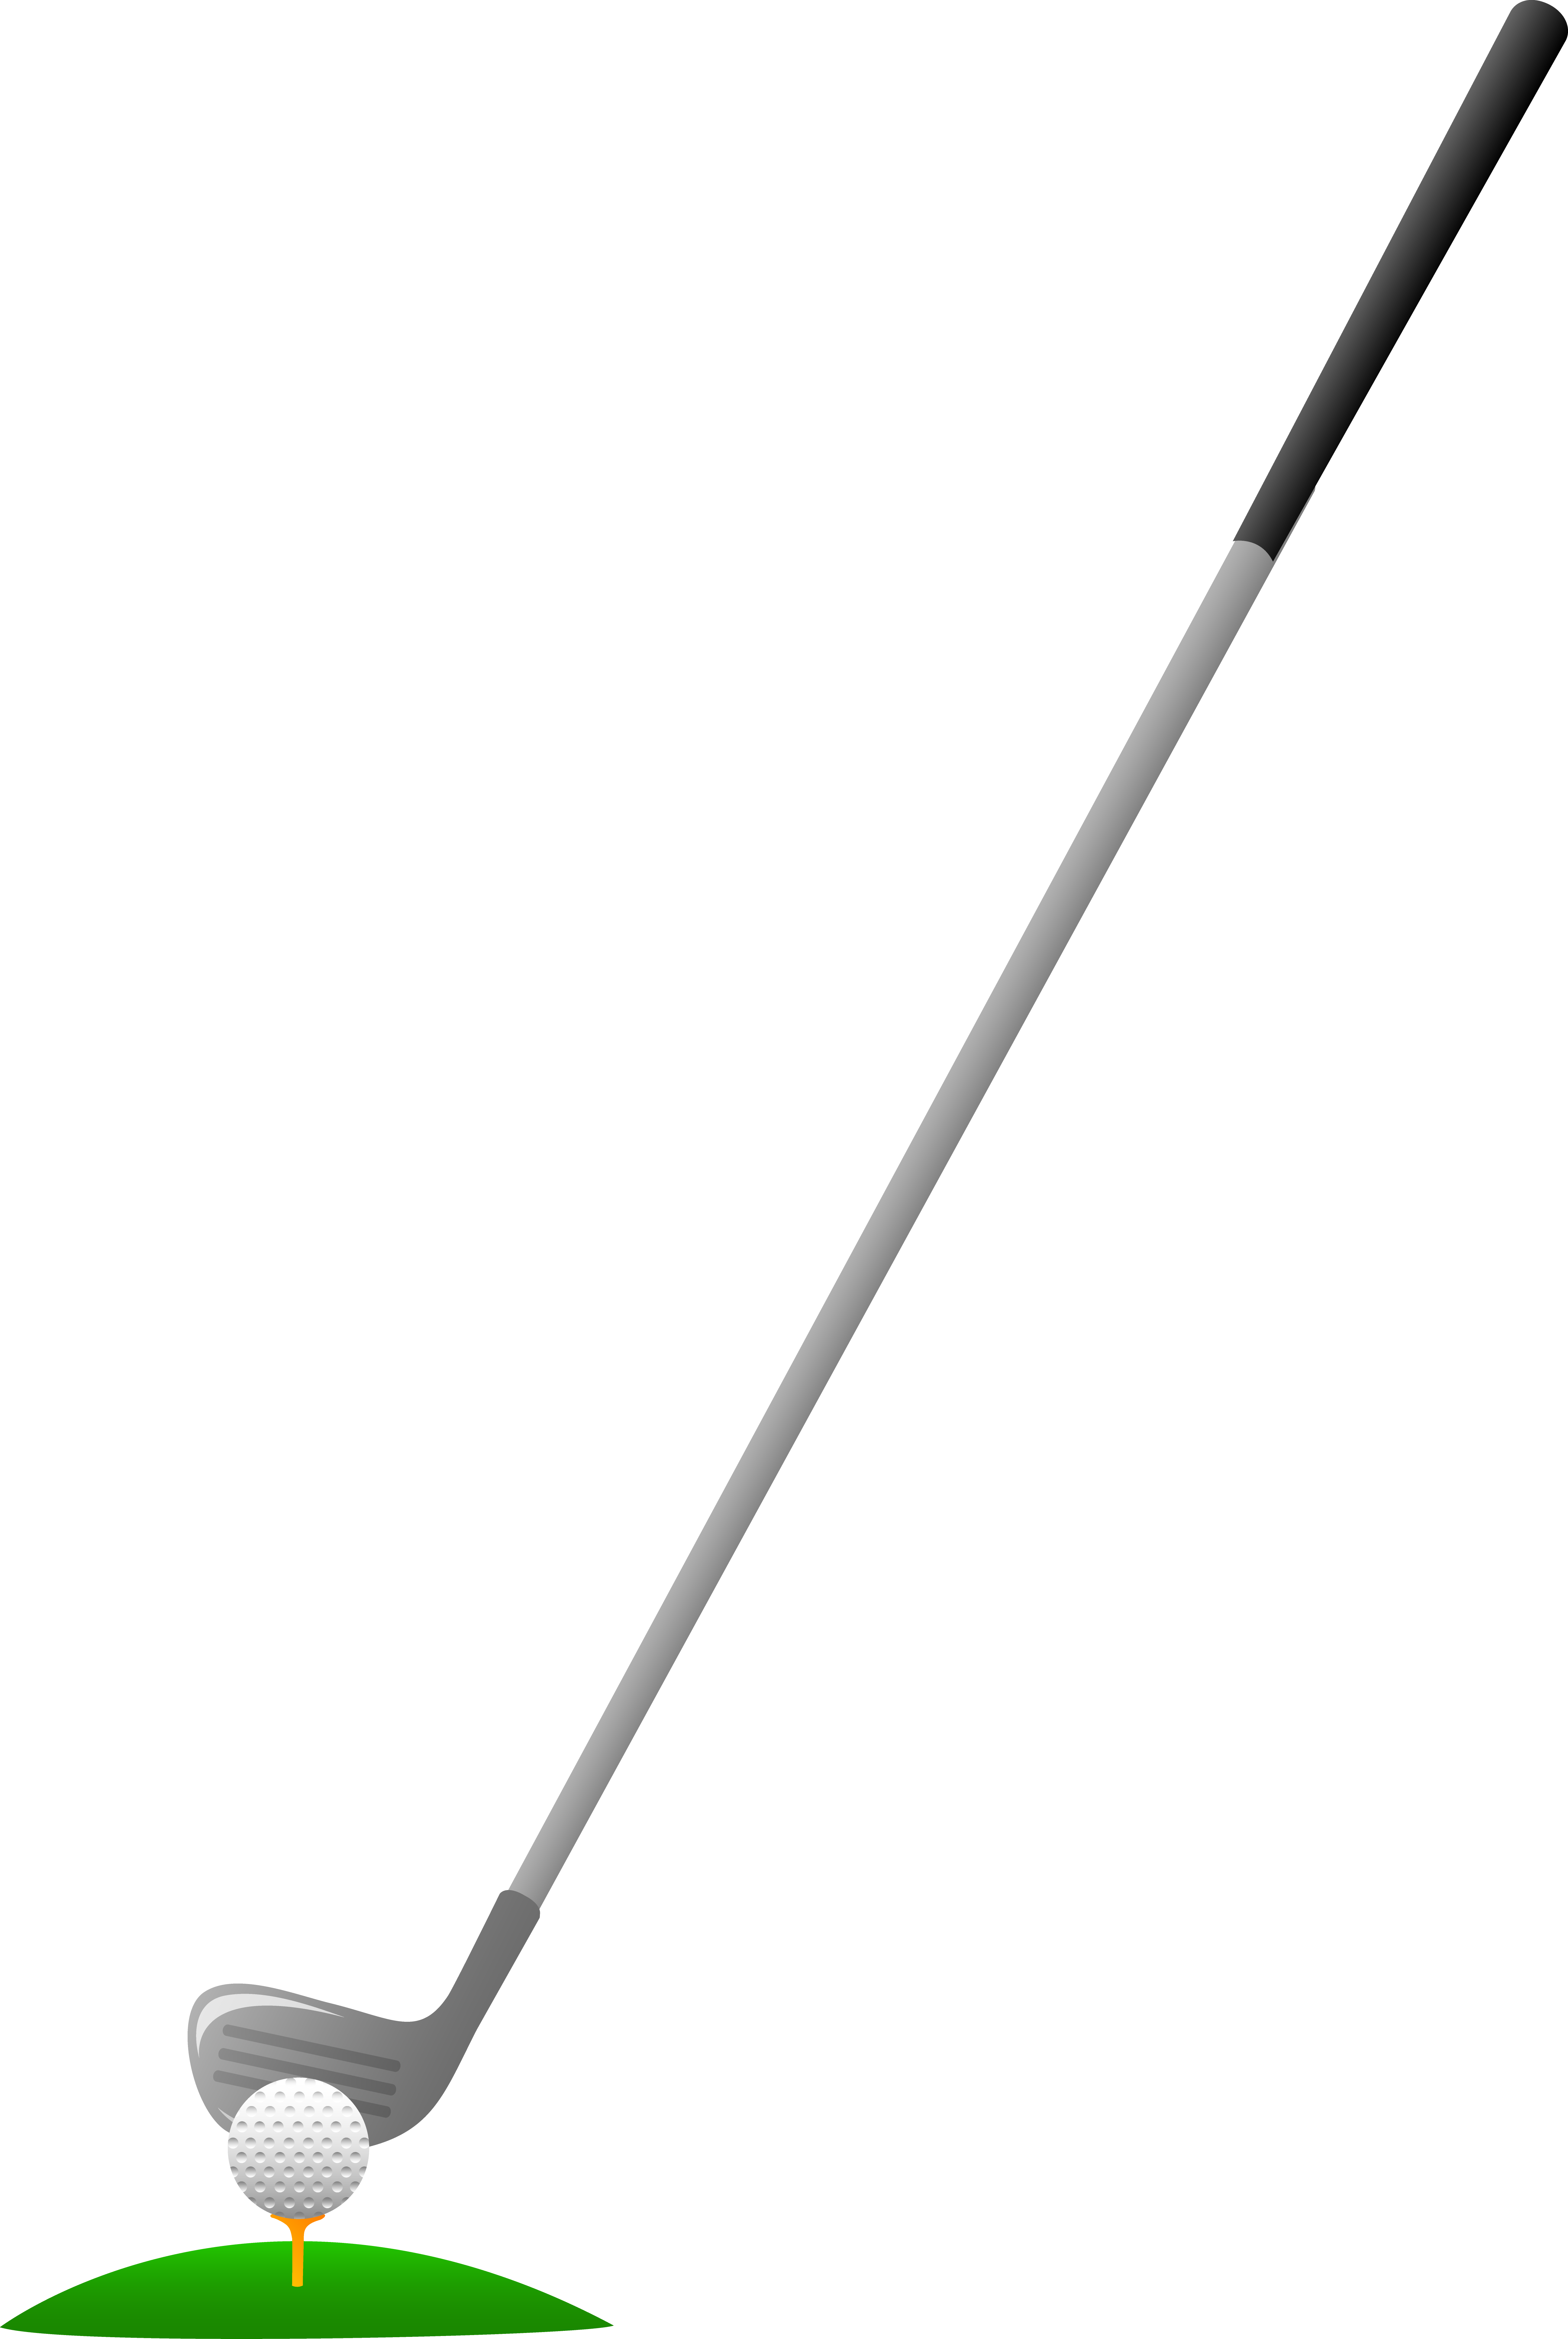 Golf Club Png Png Free Golf Club Png Transparent Images 5159 Pngio